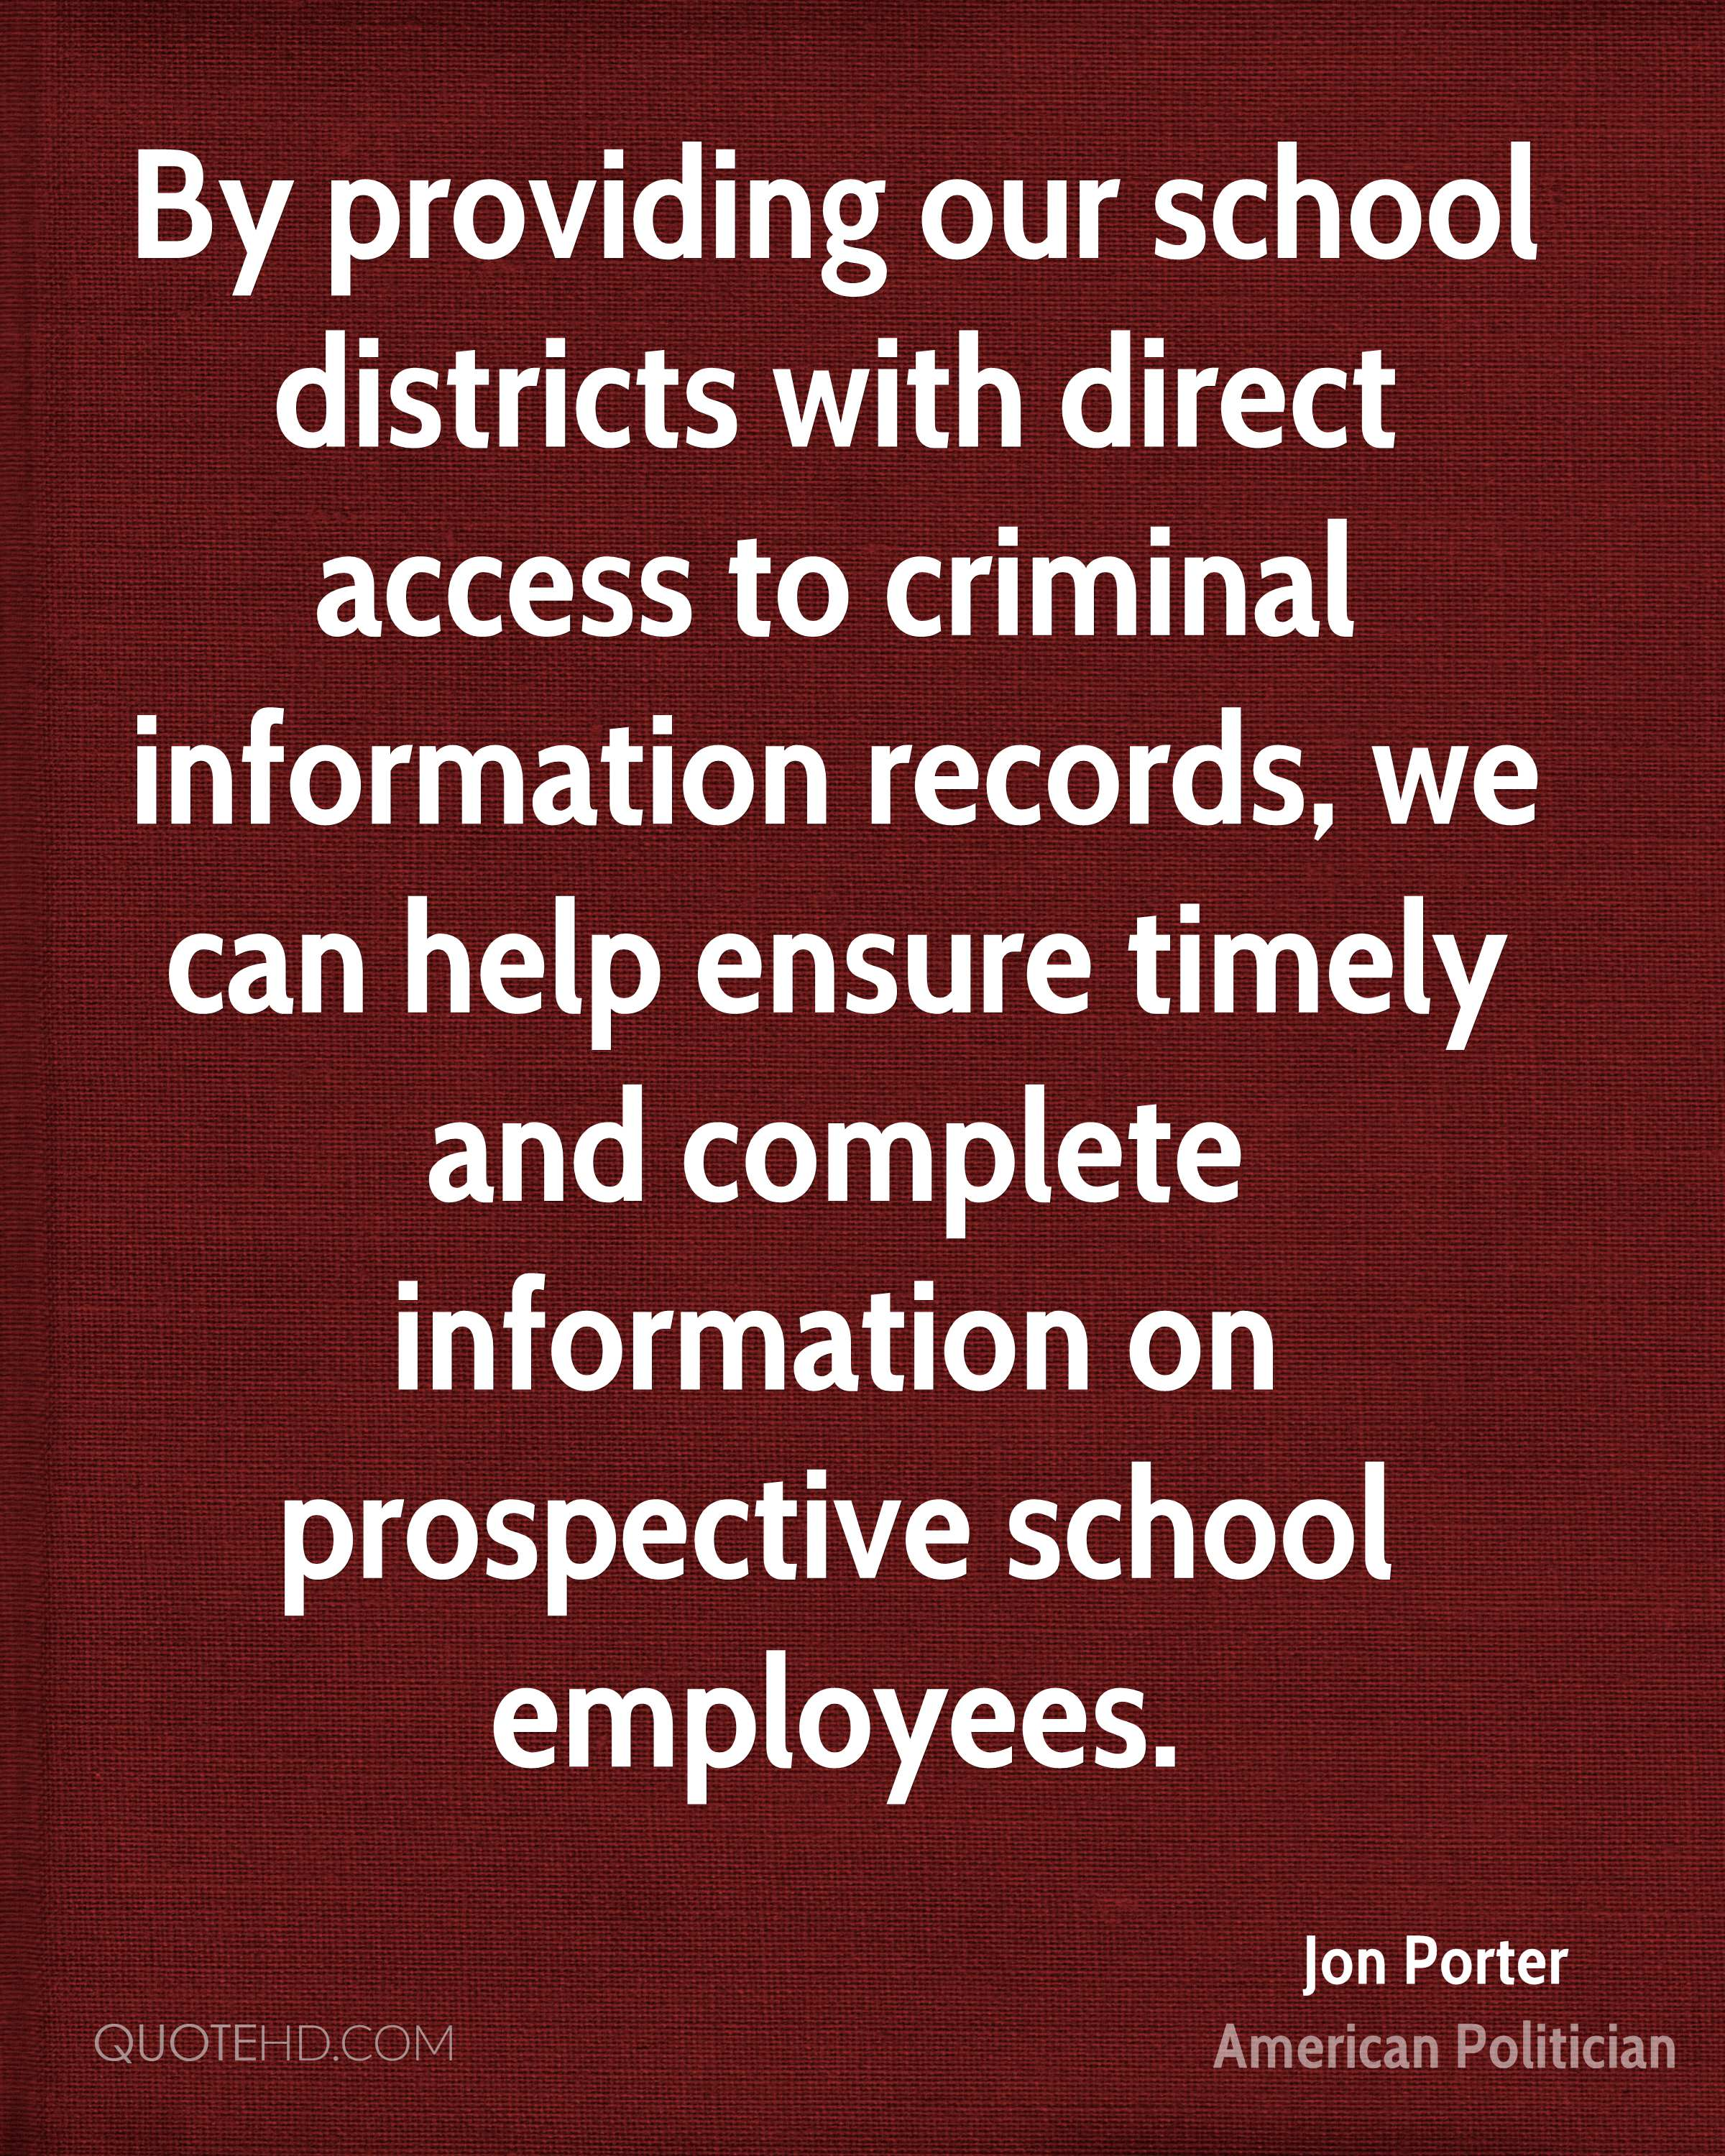 By providing our school districts with direct access to criminal information records, we can help ensure timely and complete information on prospective school employees.